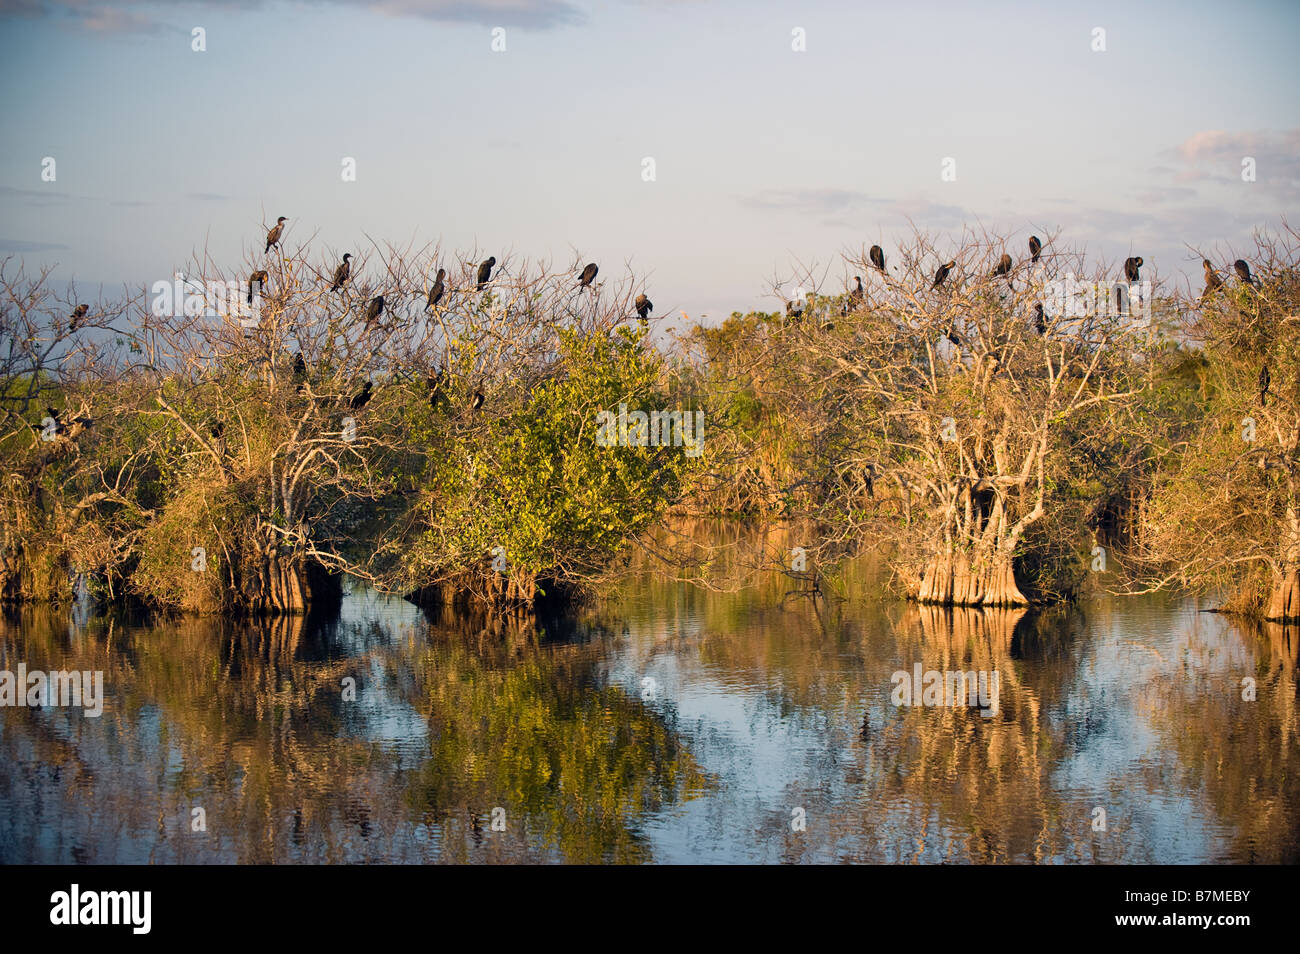 Anhinga and cormorant rookery in Everglades National Park Florida - Stock Image